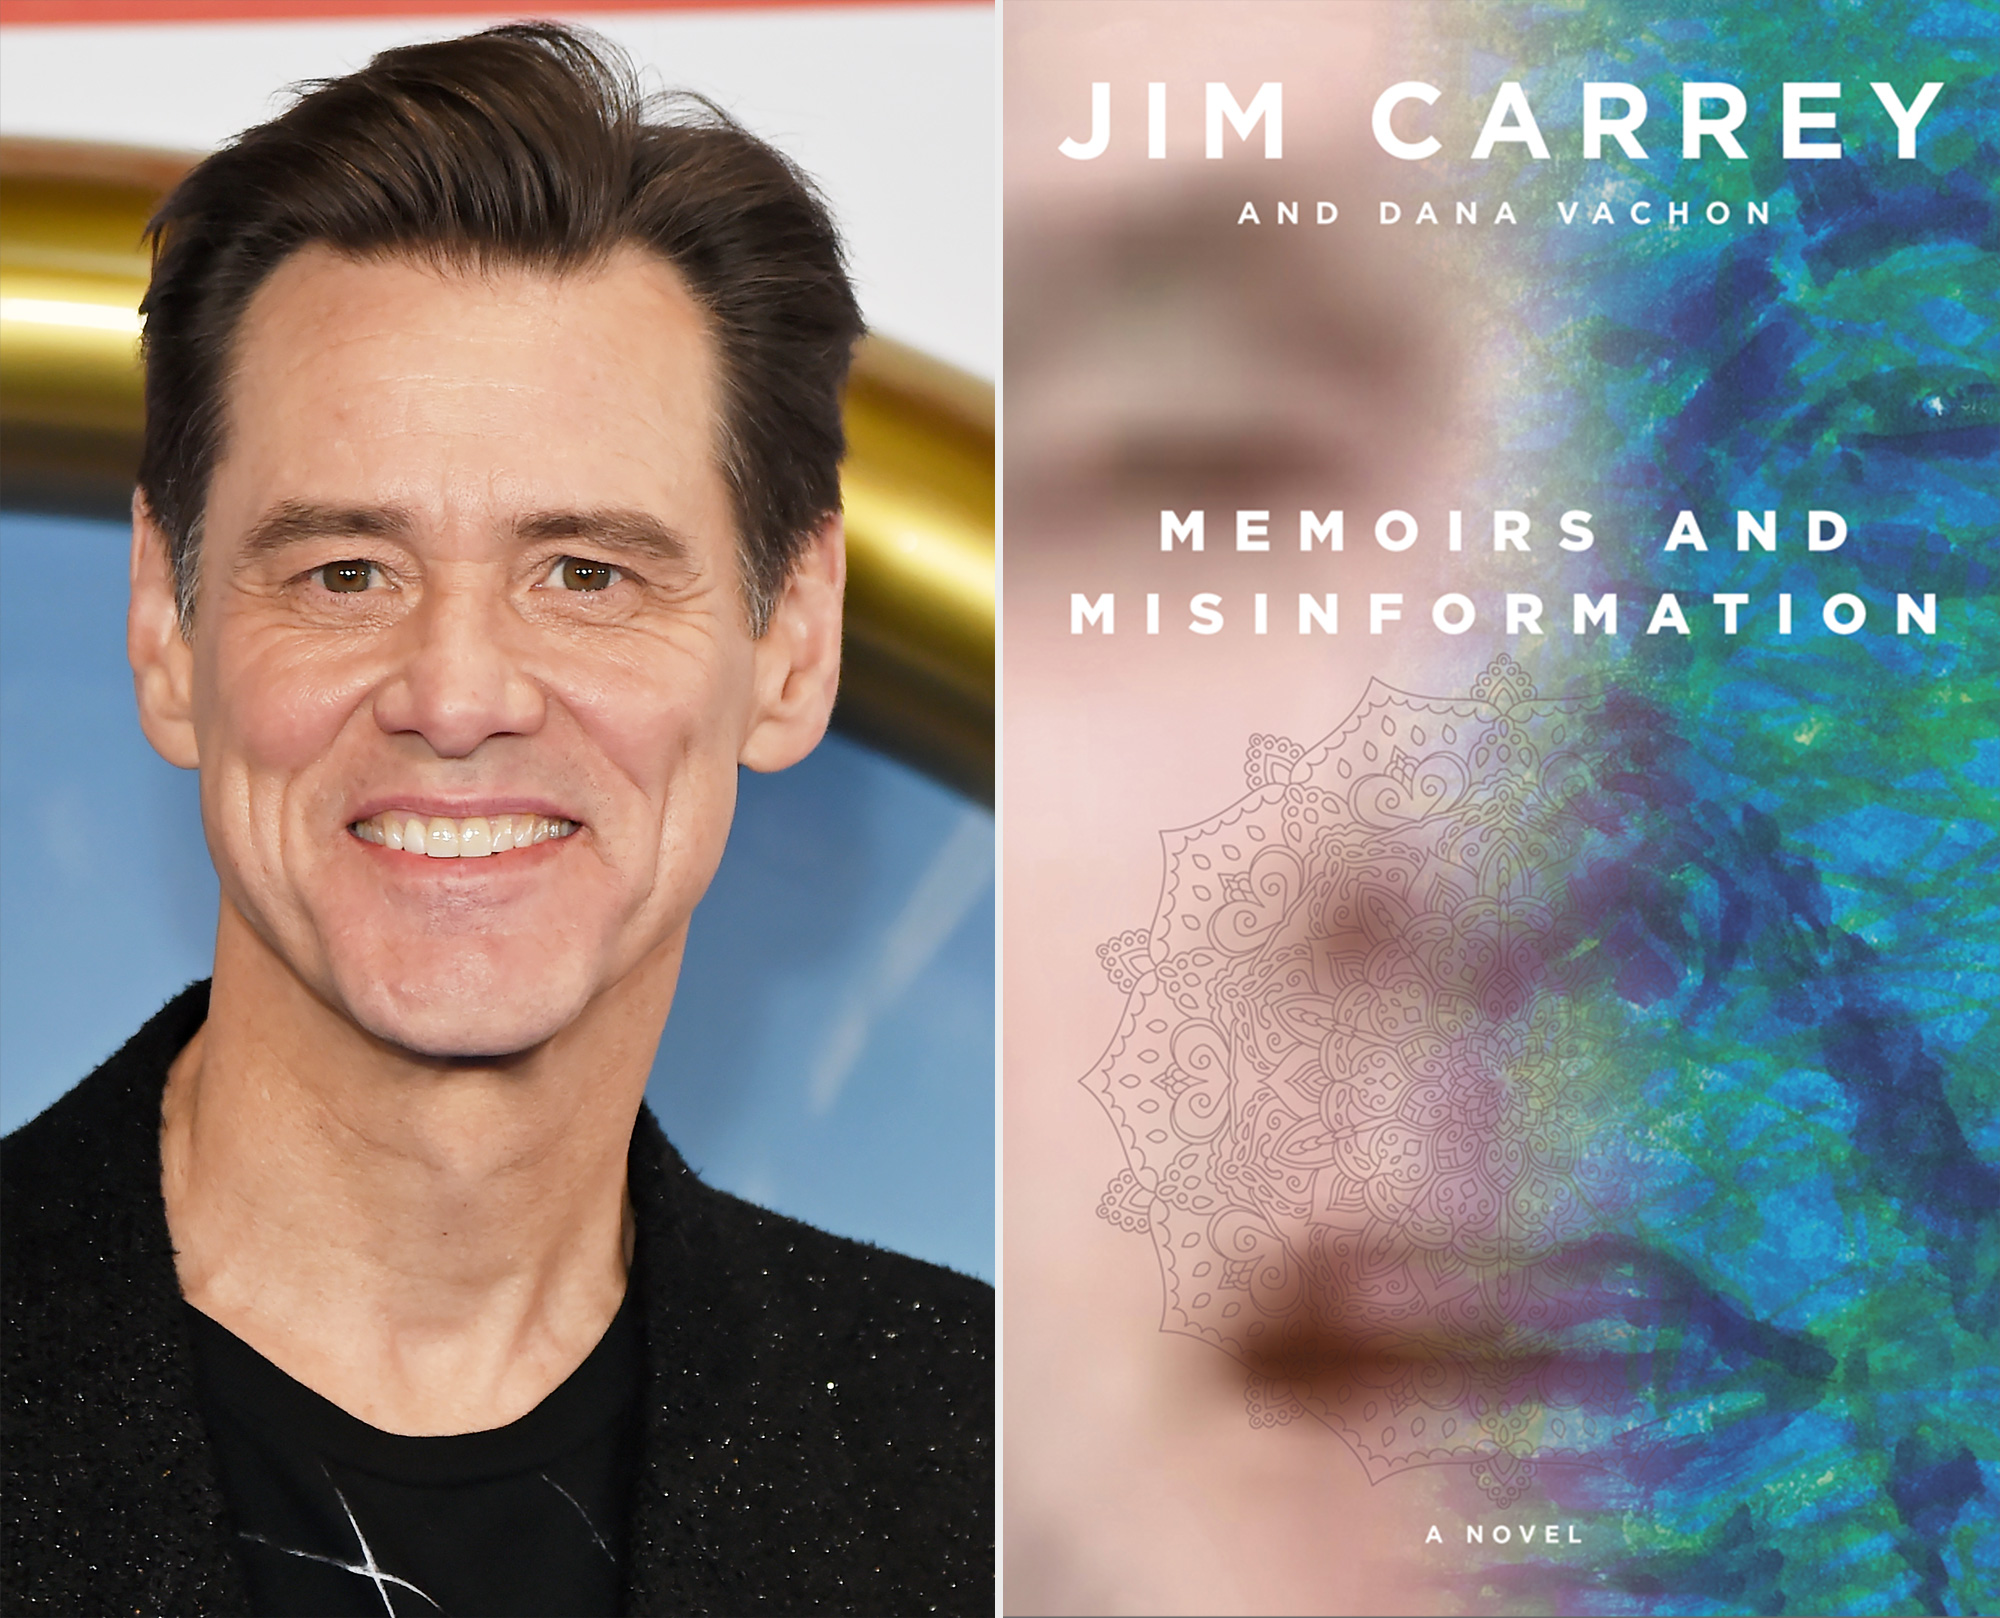 Memoirs and Misinformation A NOVEL By JIM CARREY and DANA VACHON